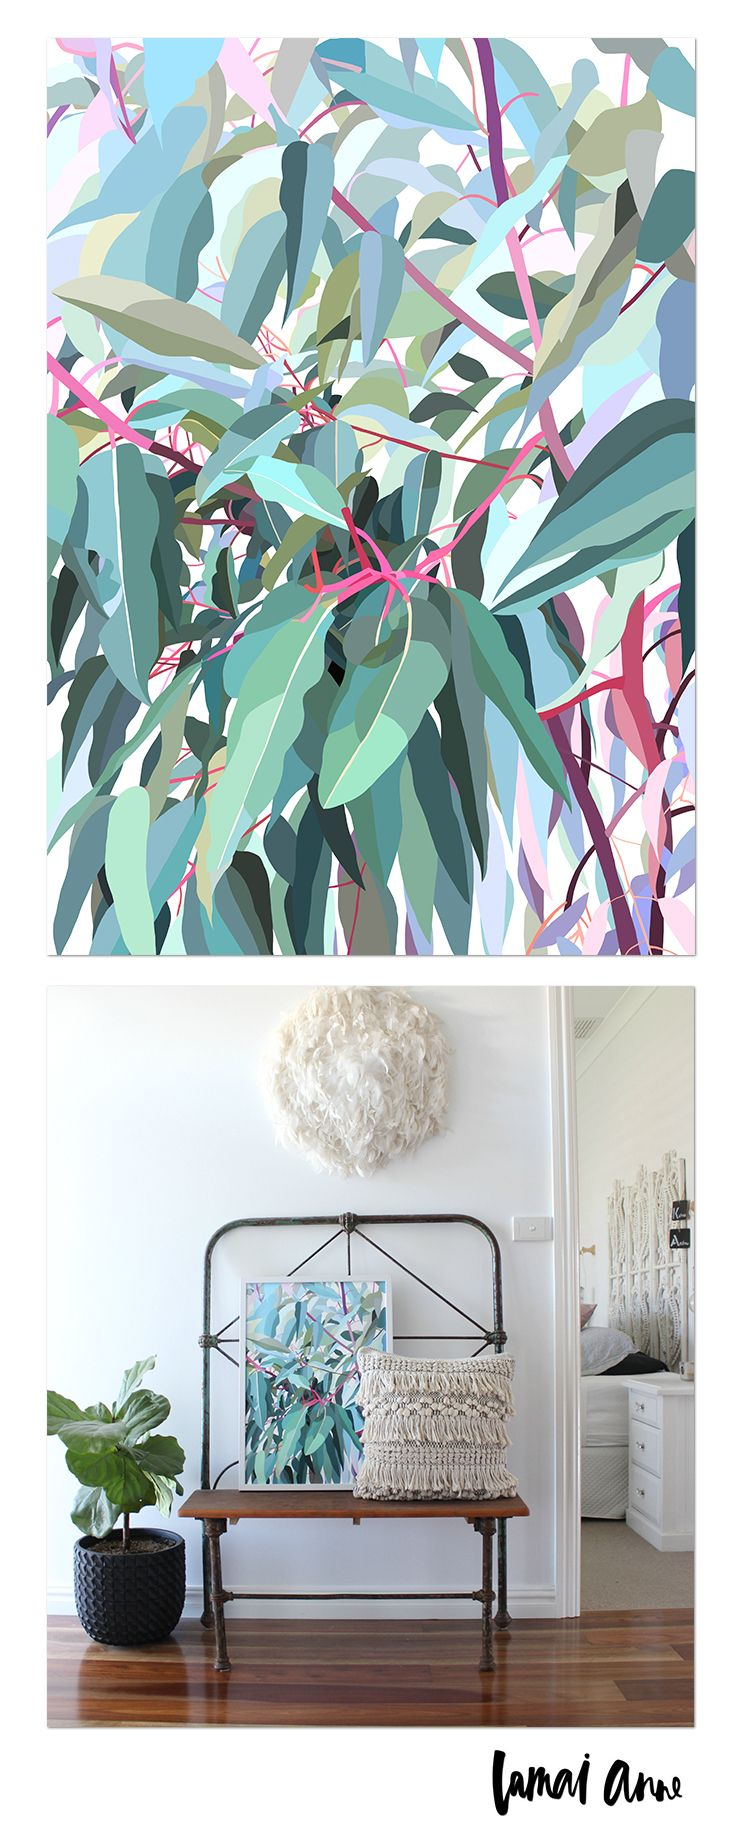 Gumtree limited edition print by Australian artist Lamai Anne. What a wonderful way of bringing the Australian outdoors and a real pop of colour into your home. Lamai's artwork is a collaboration of Native Flora and Fauna that encompasses her home and surroundings. Her illustrations of Australian Natives are meticulously brought to life through her digital art, and the composition between the seasons to create vivid, colourful and eye catching pieces.